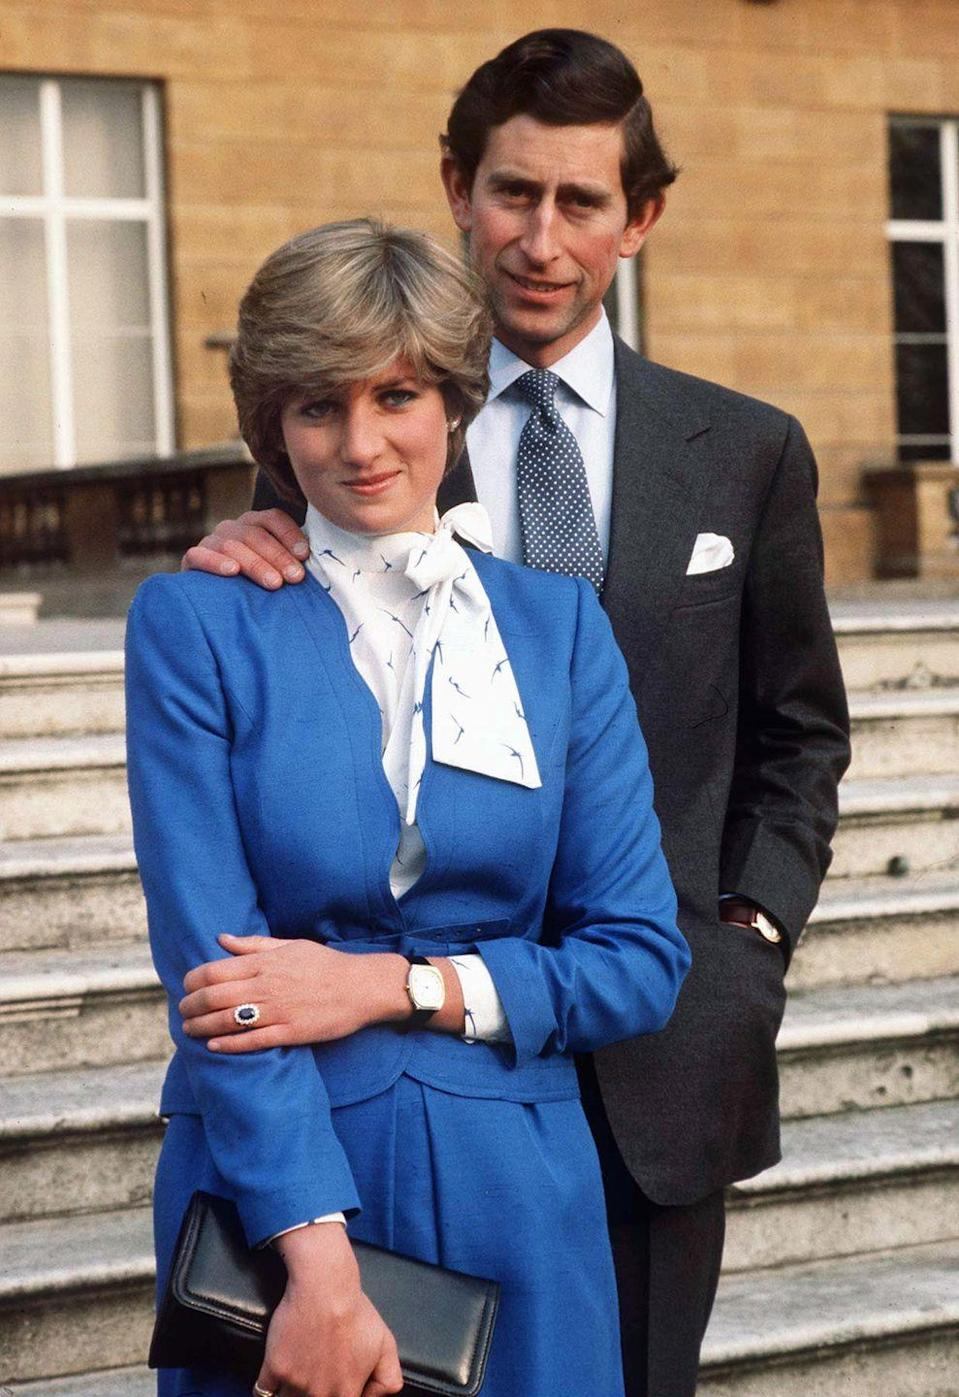 <p>The engagement ring of the century (yep, the same sapphire sparkler that Kate Middleton now totes around) made its debut when Prince Charles and Lady Diana Spencer announced their engagement on the grounds outside of Buckingham Palace. </p>